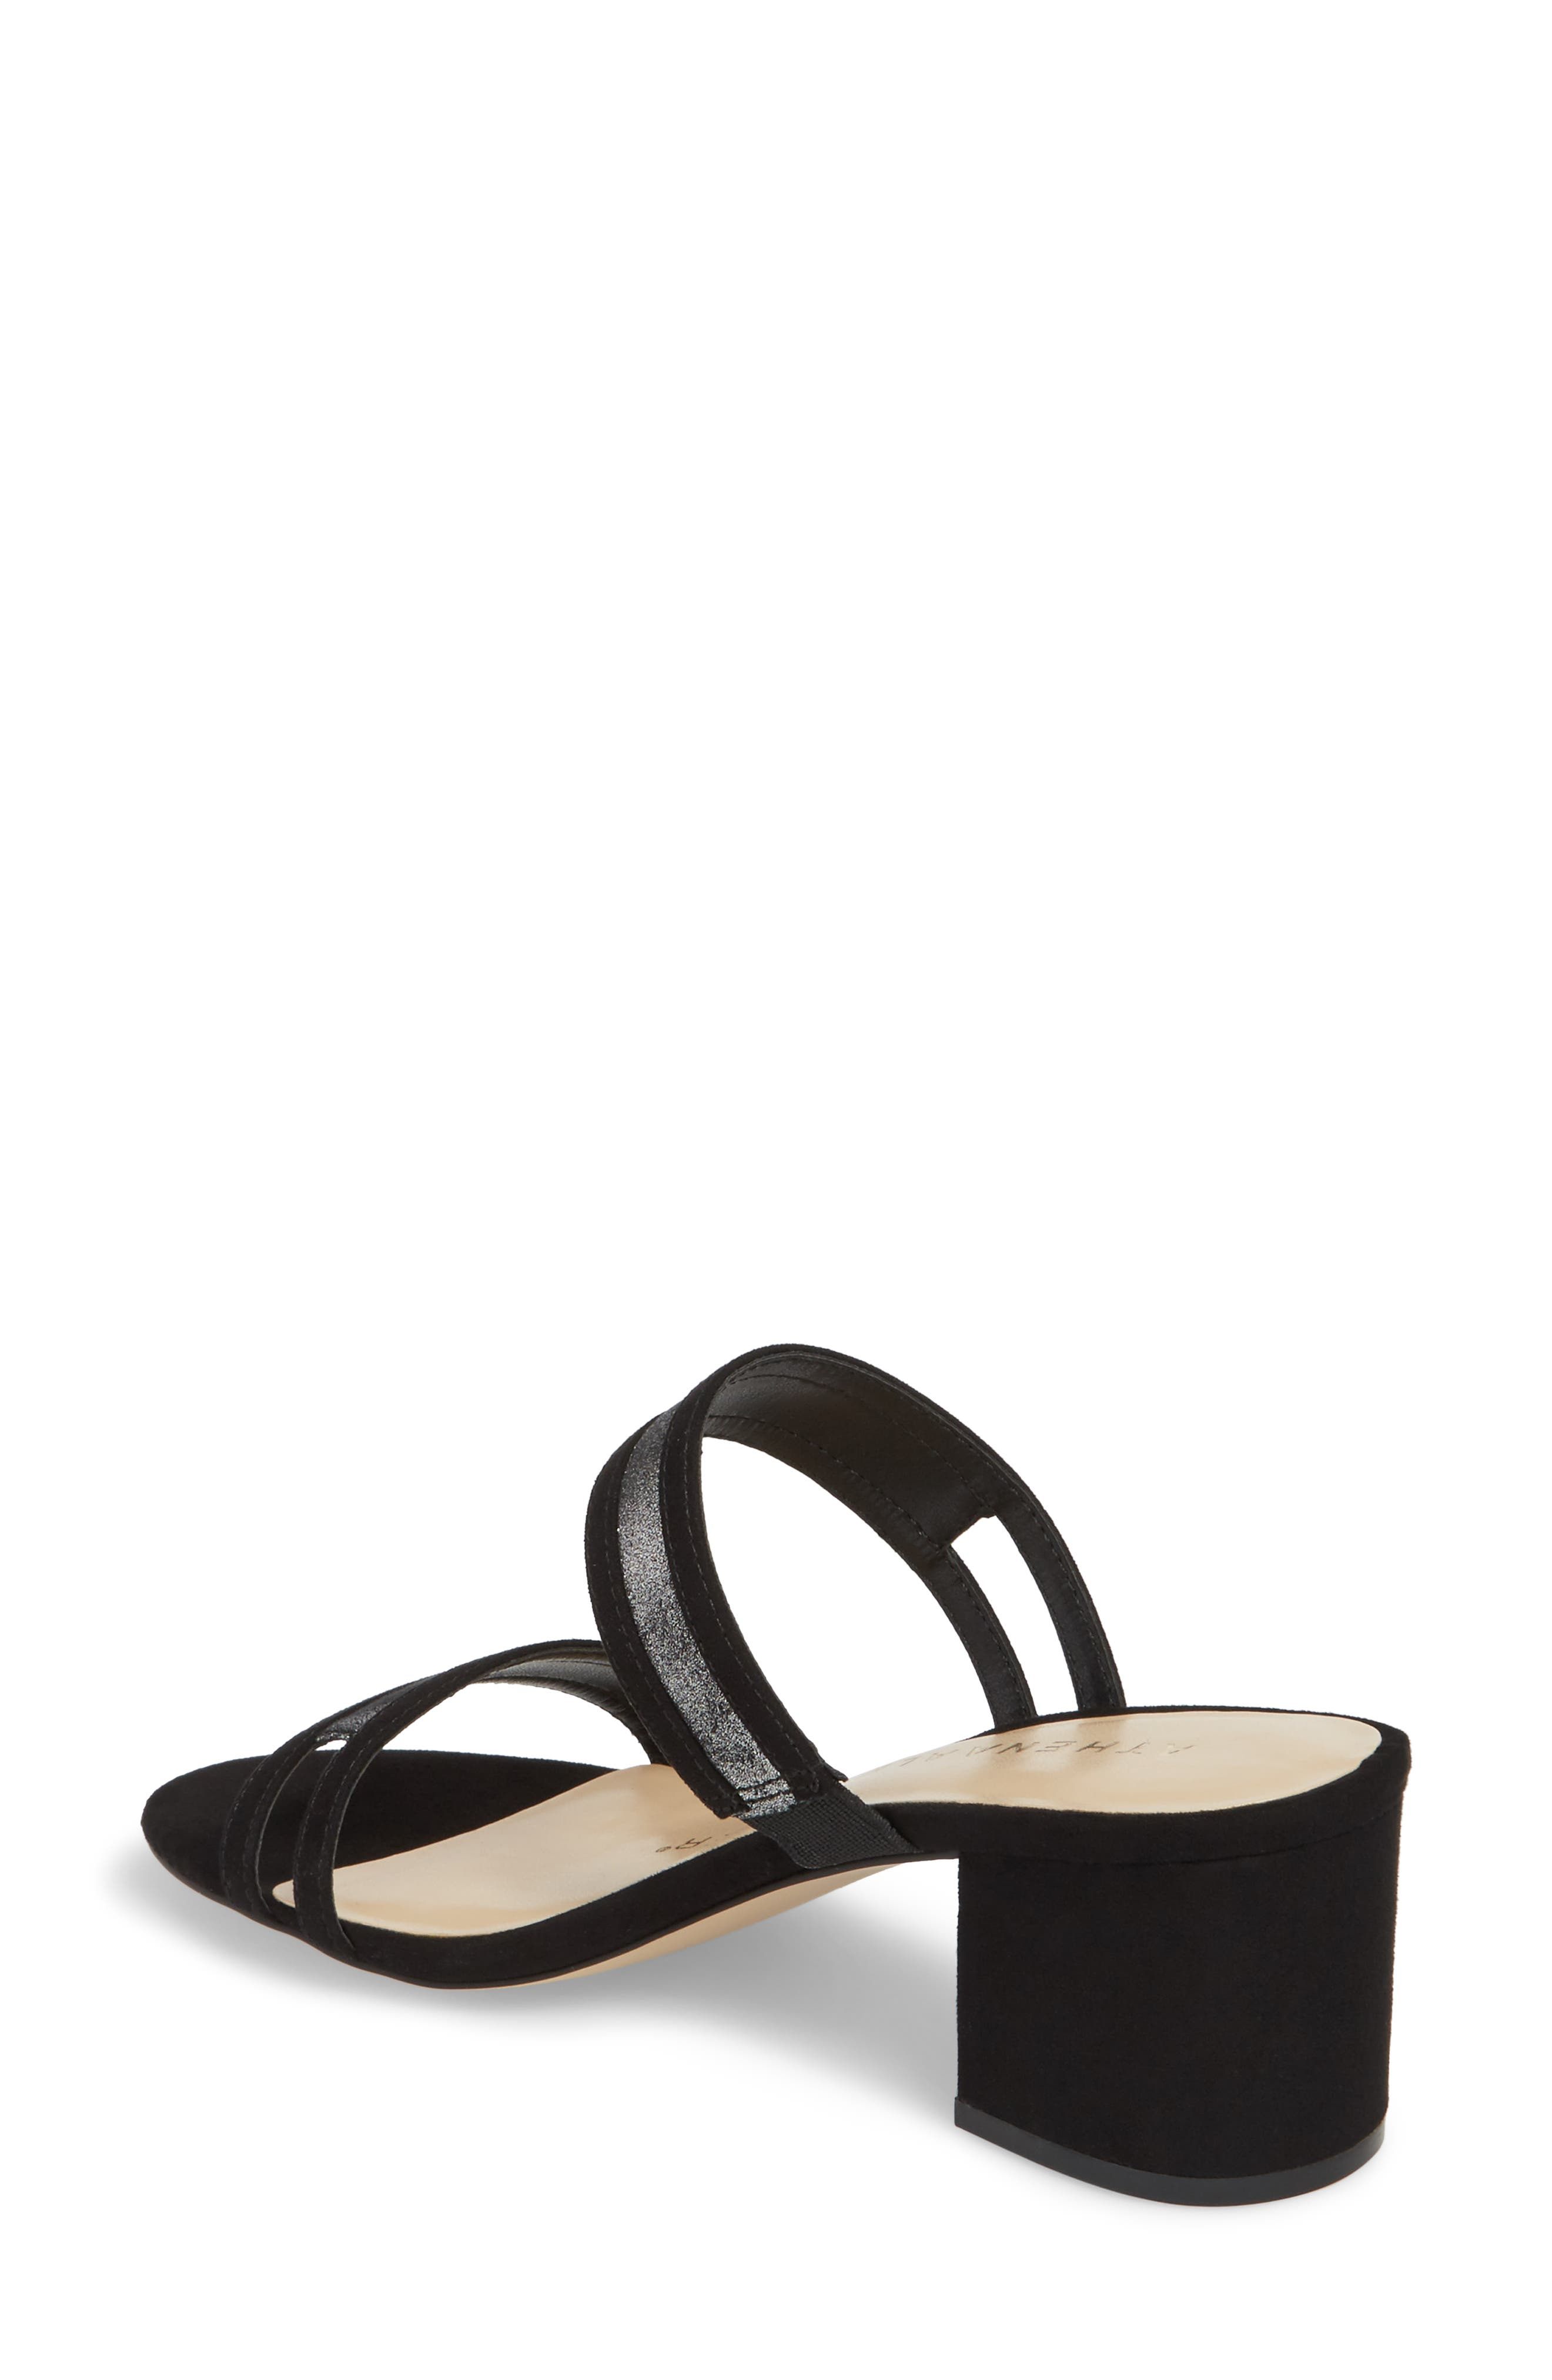 ATHENA ALEXANDER,                             Zayden Double Band Sandal,                             Alternate thumbnail 2, color,                             003